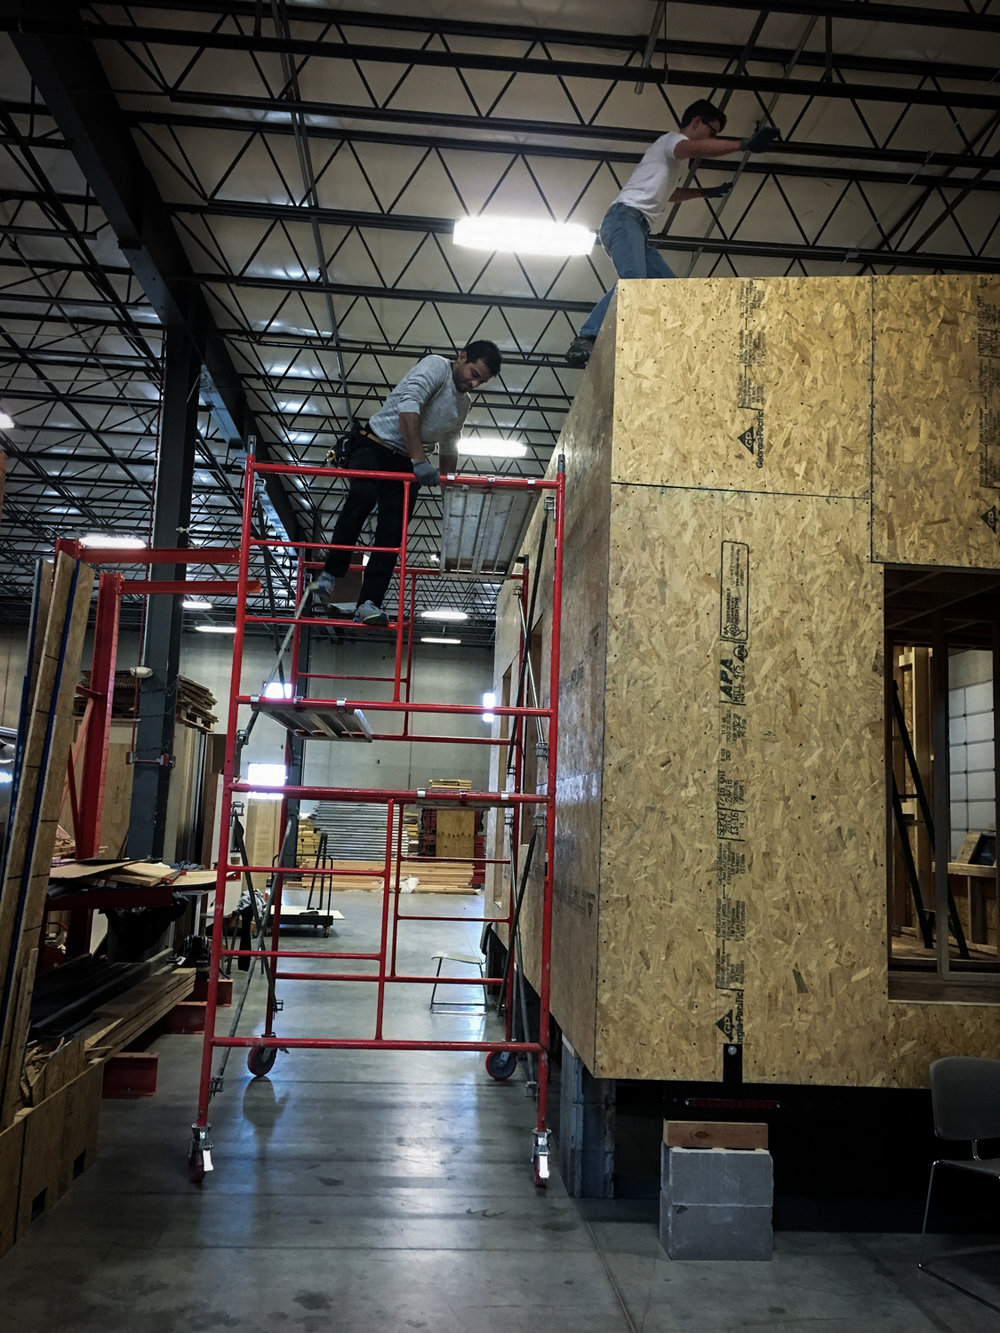 tlw_blog_sheathing (12 of 18).jpg